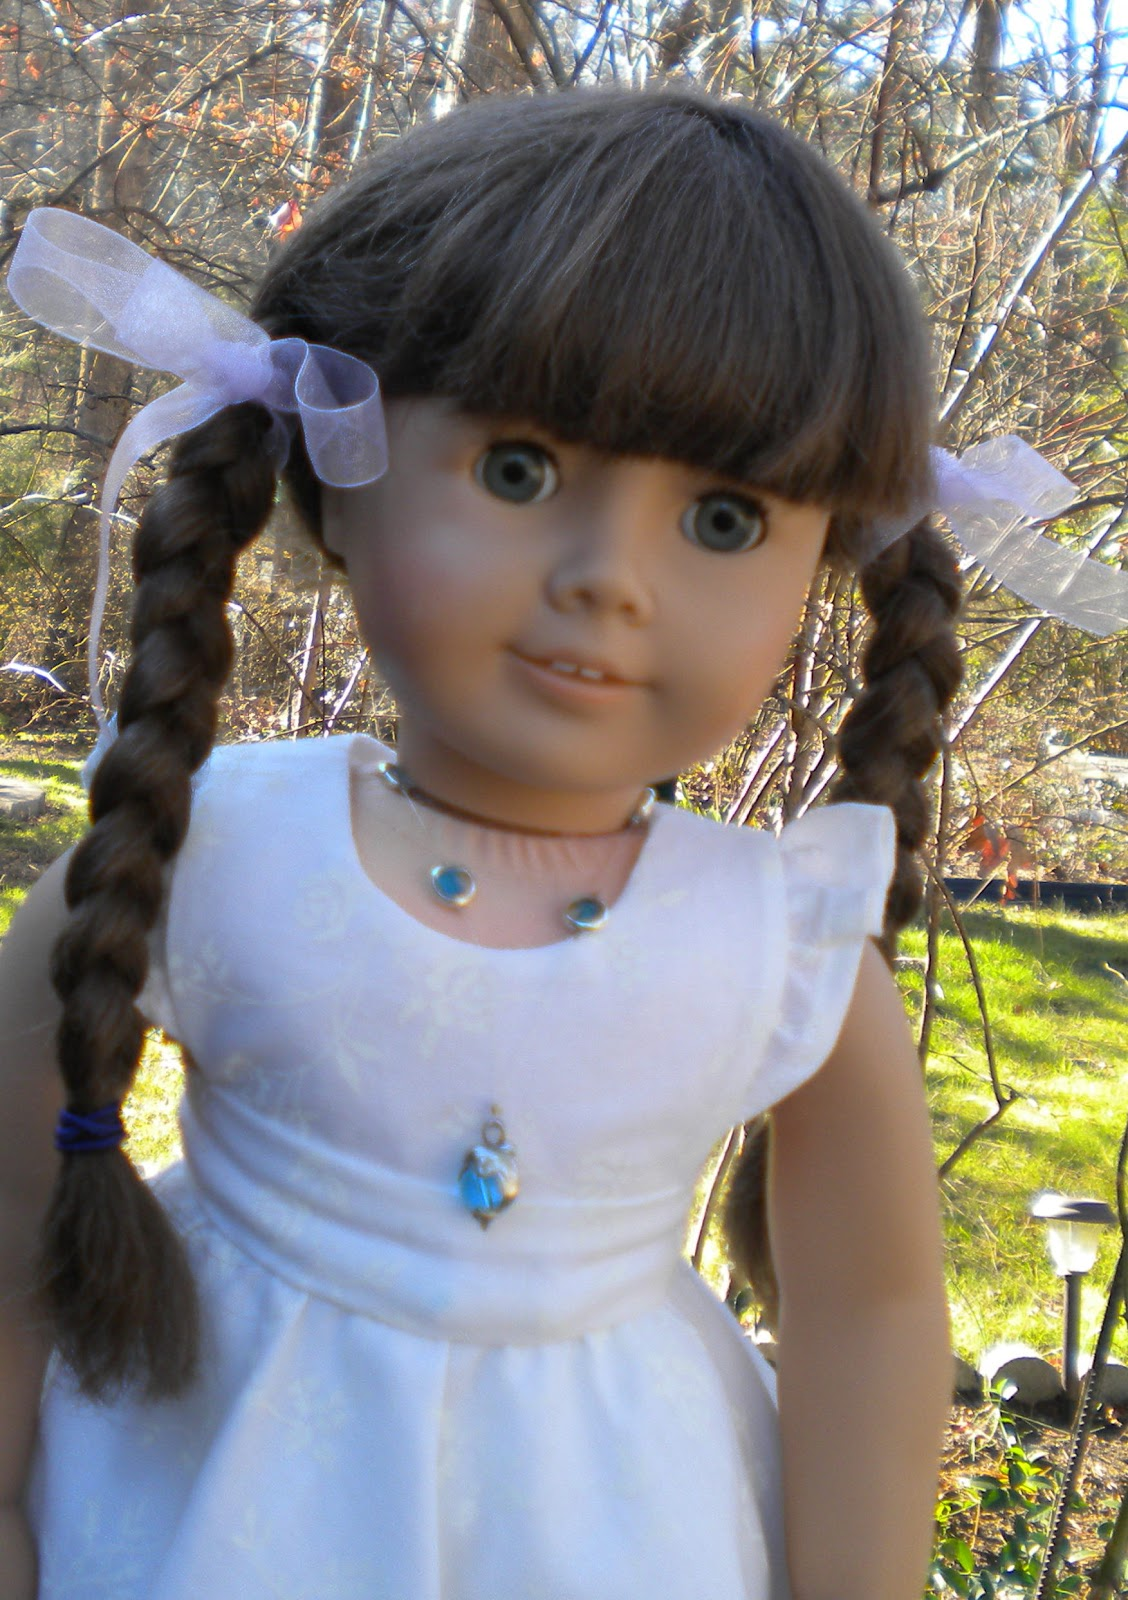 My Dolly's Closet: Gently Used American Girl Dolls for Sale